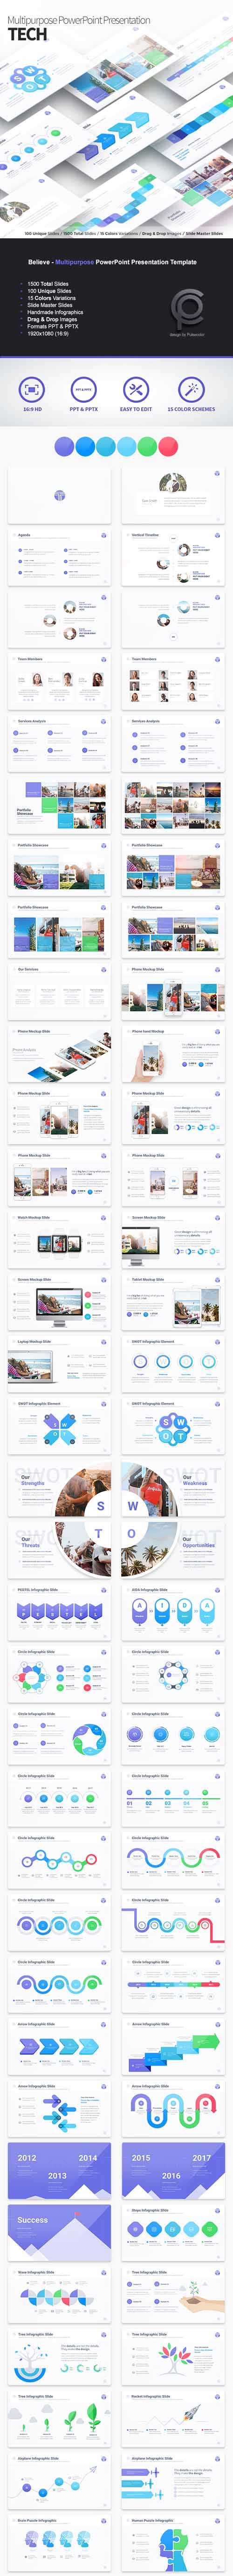 Tech - Multipurpose PowerPoint Presentation Template 19288687